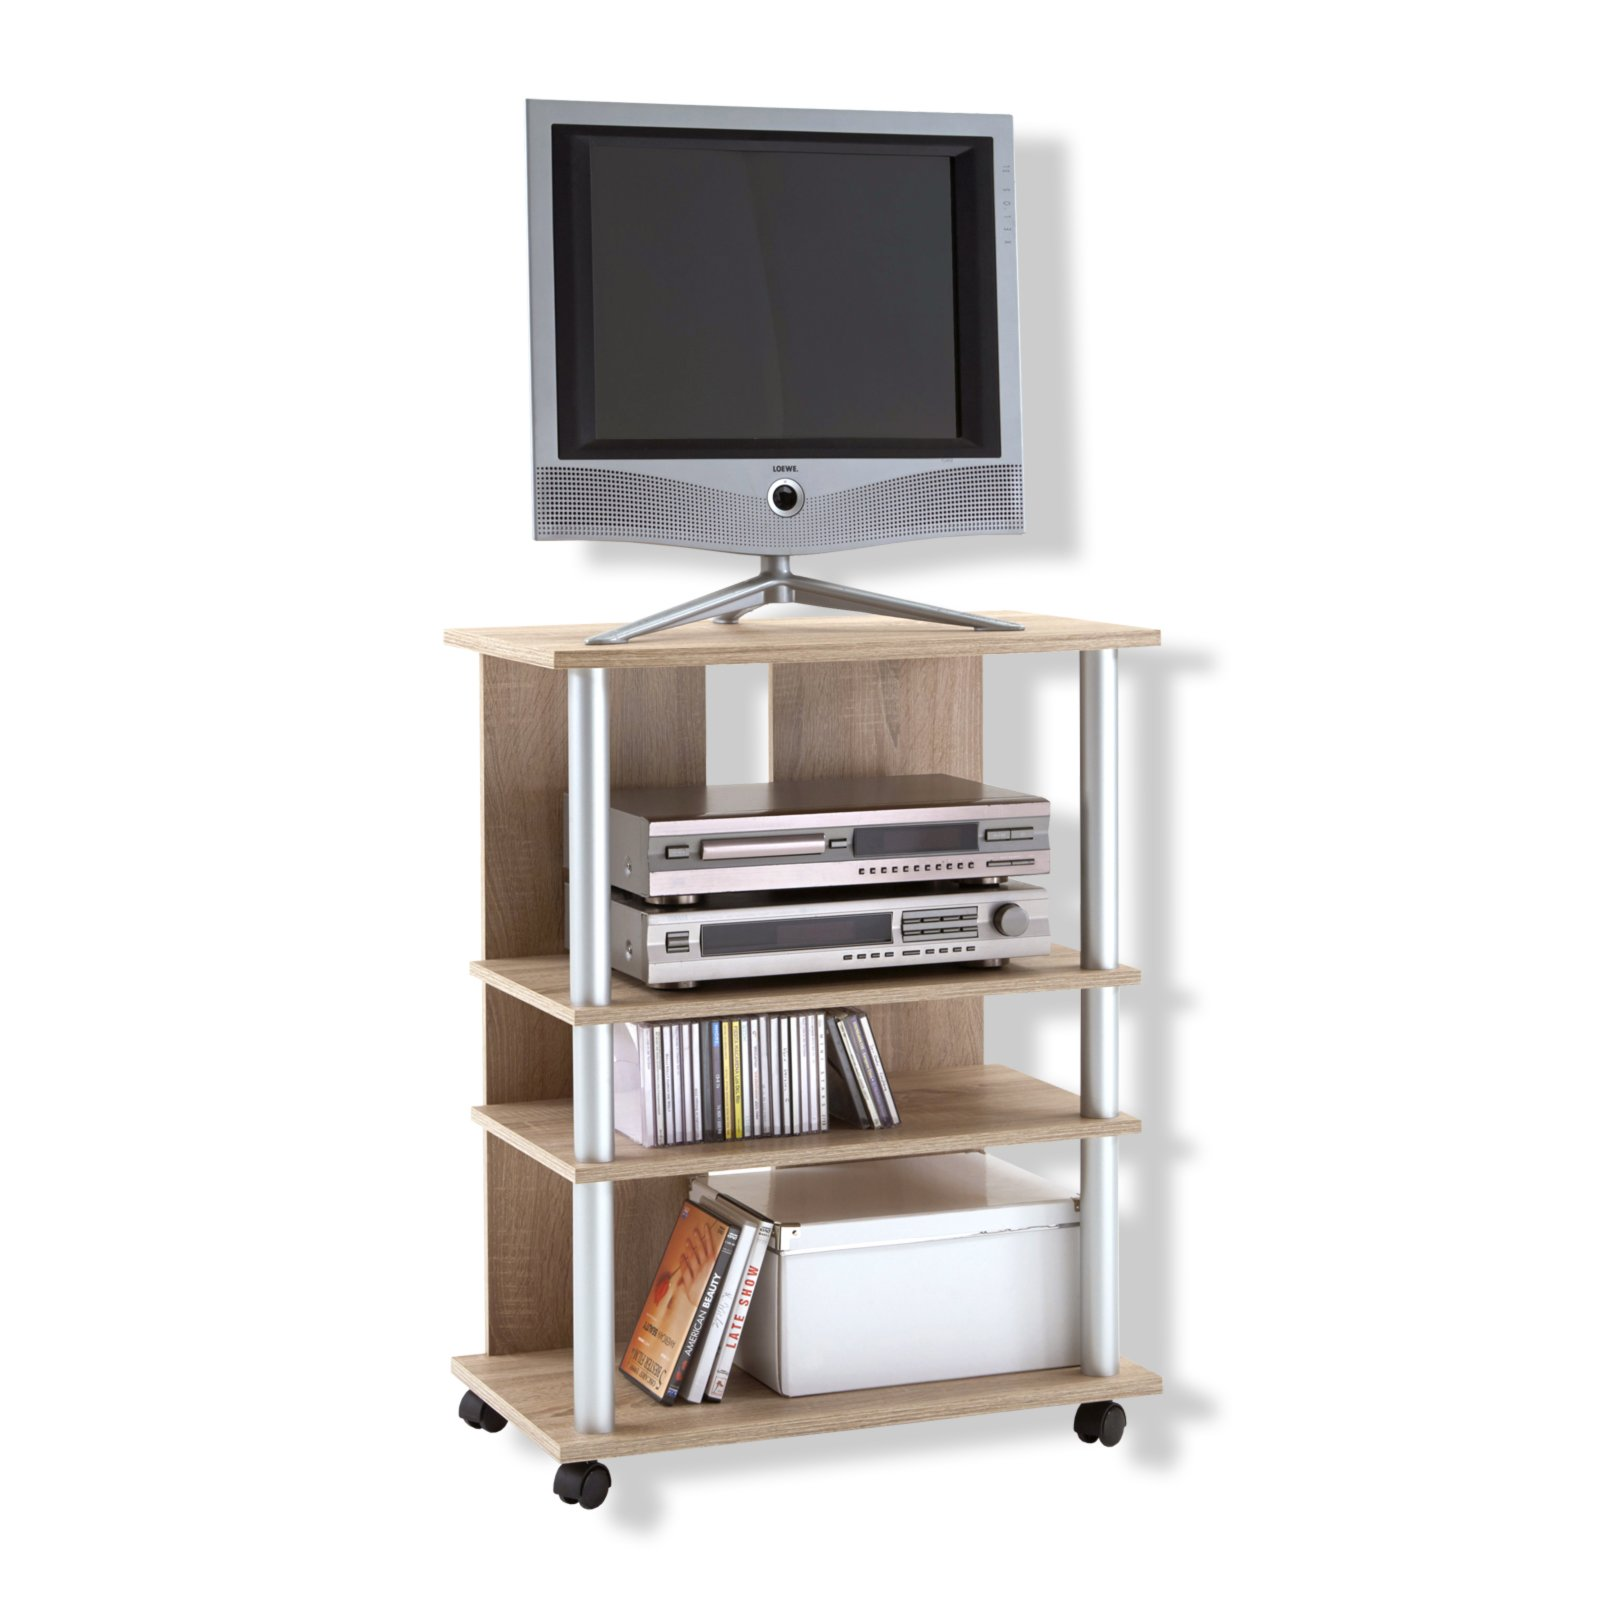 roller tv hifi rack variant 7 sonoma eiche mit rollen ebay. Black Bedroom Furniture Sets. Home Design Ideas